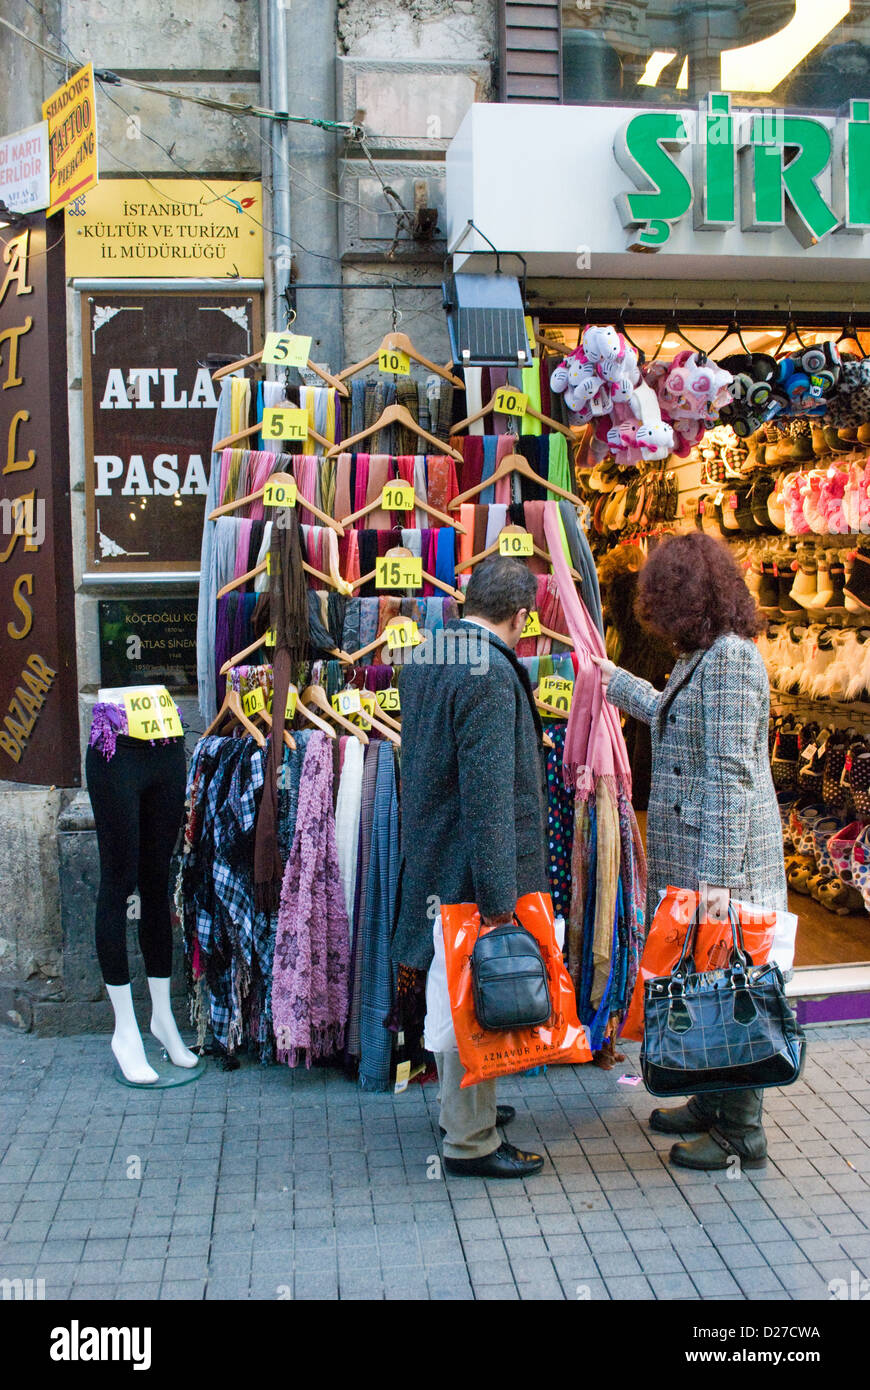 Clothes stores in istanbul turkey